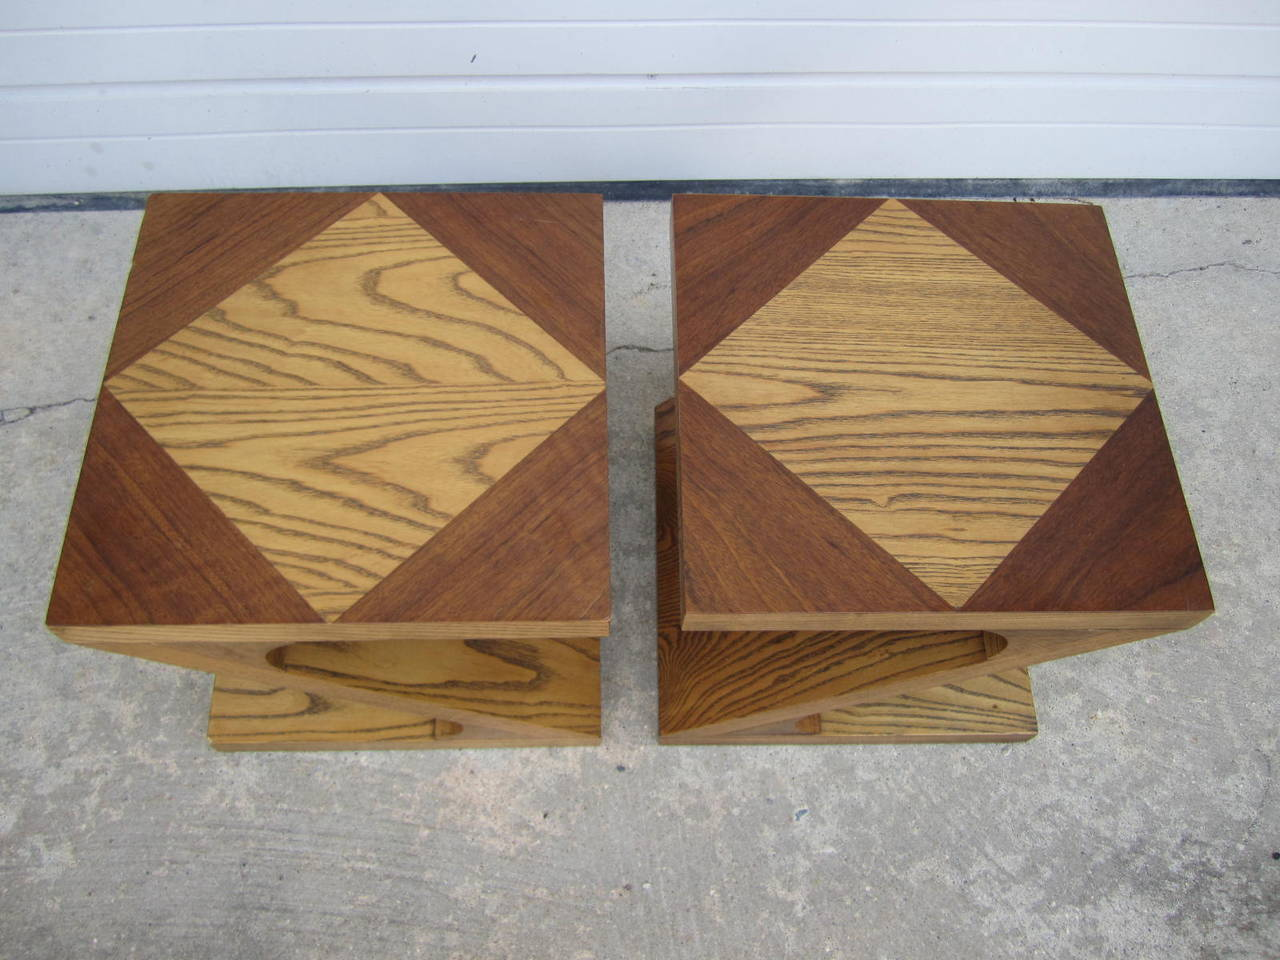 Excellent pair of signed Lane Z end tables. These rare small tables still retain their original hang tags. They are in excellent vintage condition with only some very light wear.